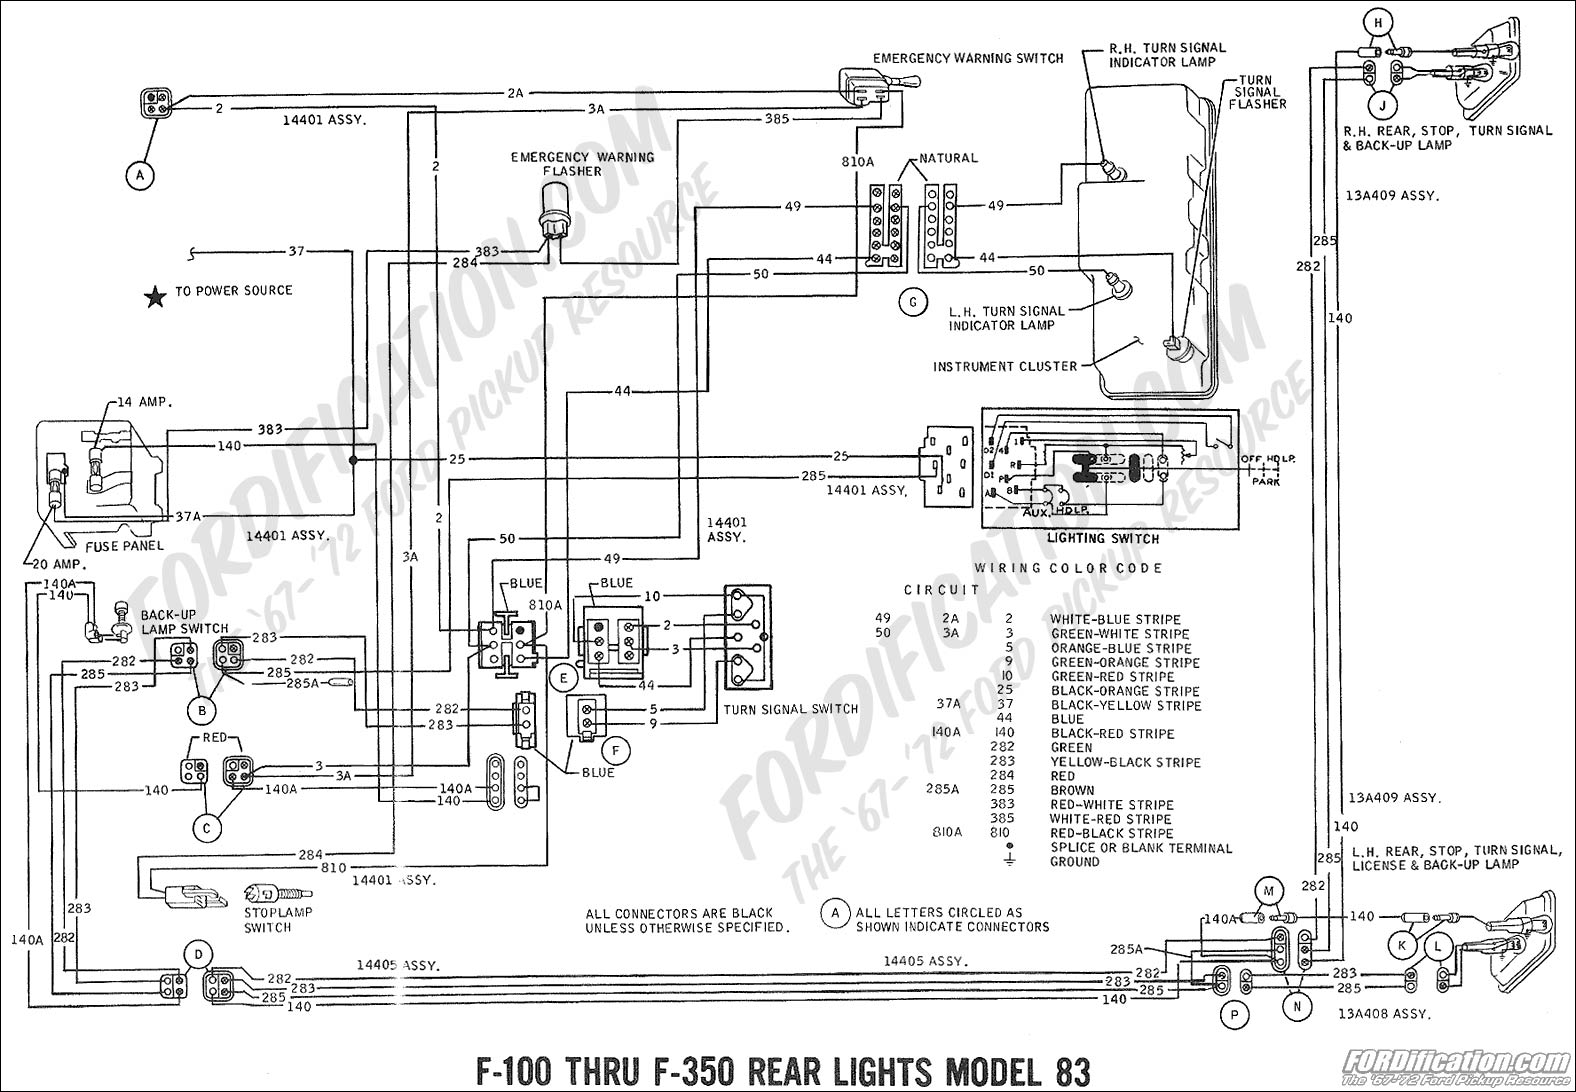 wiring_69rearlights mdl83 2 ford truck technical drawings and schematics section h wiring wiring diagrams for 2017 ford trucks at webbmarketing.co